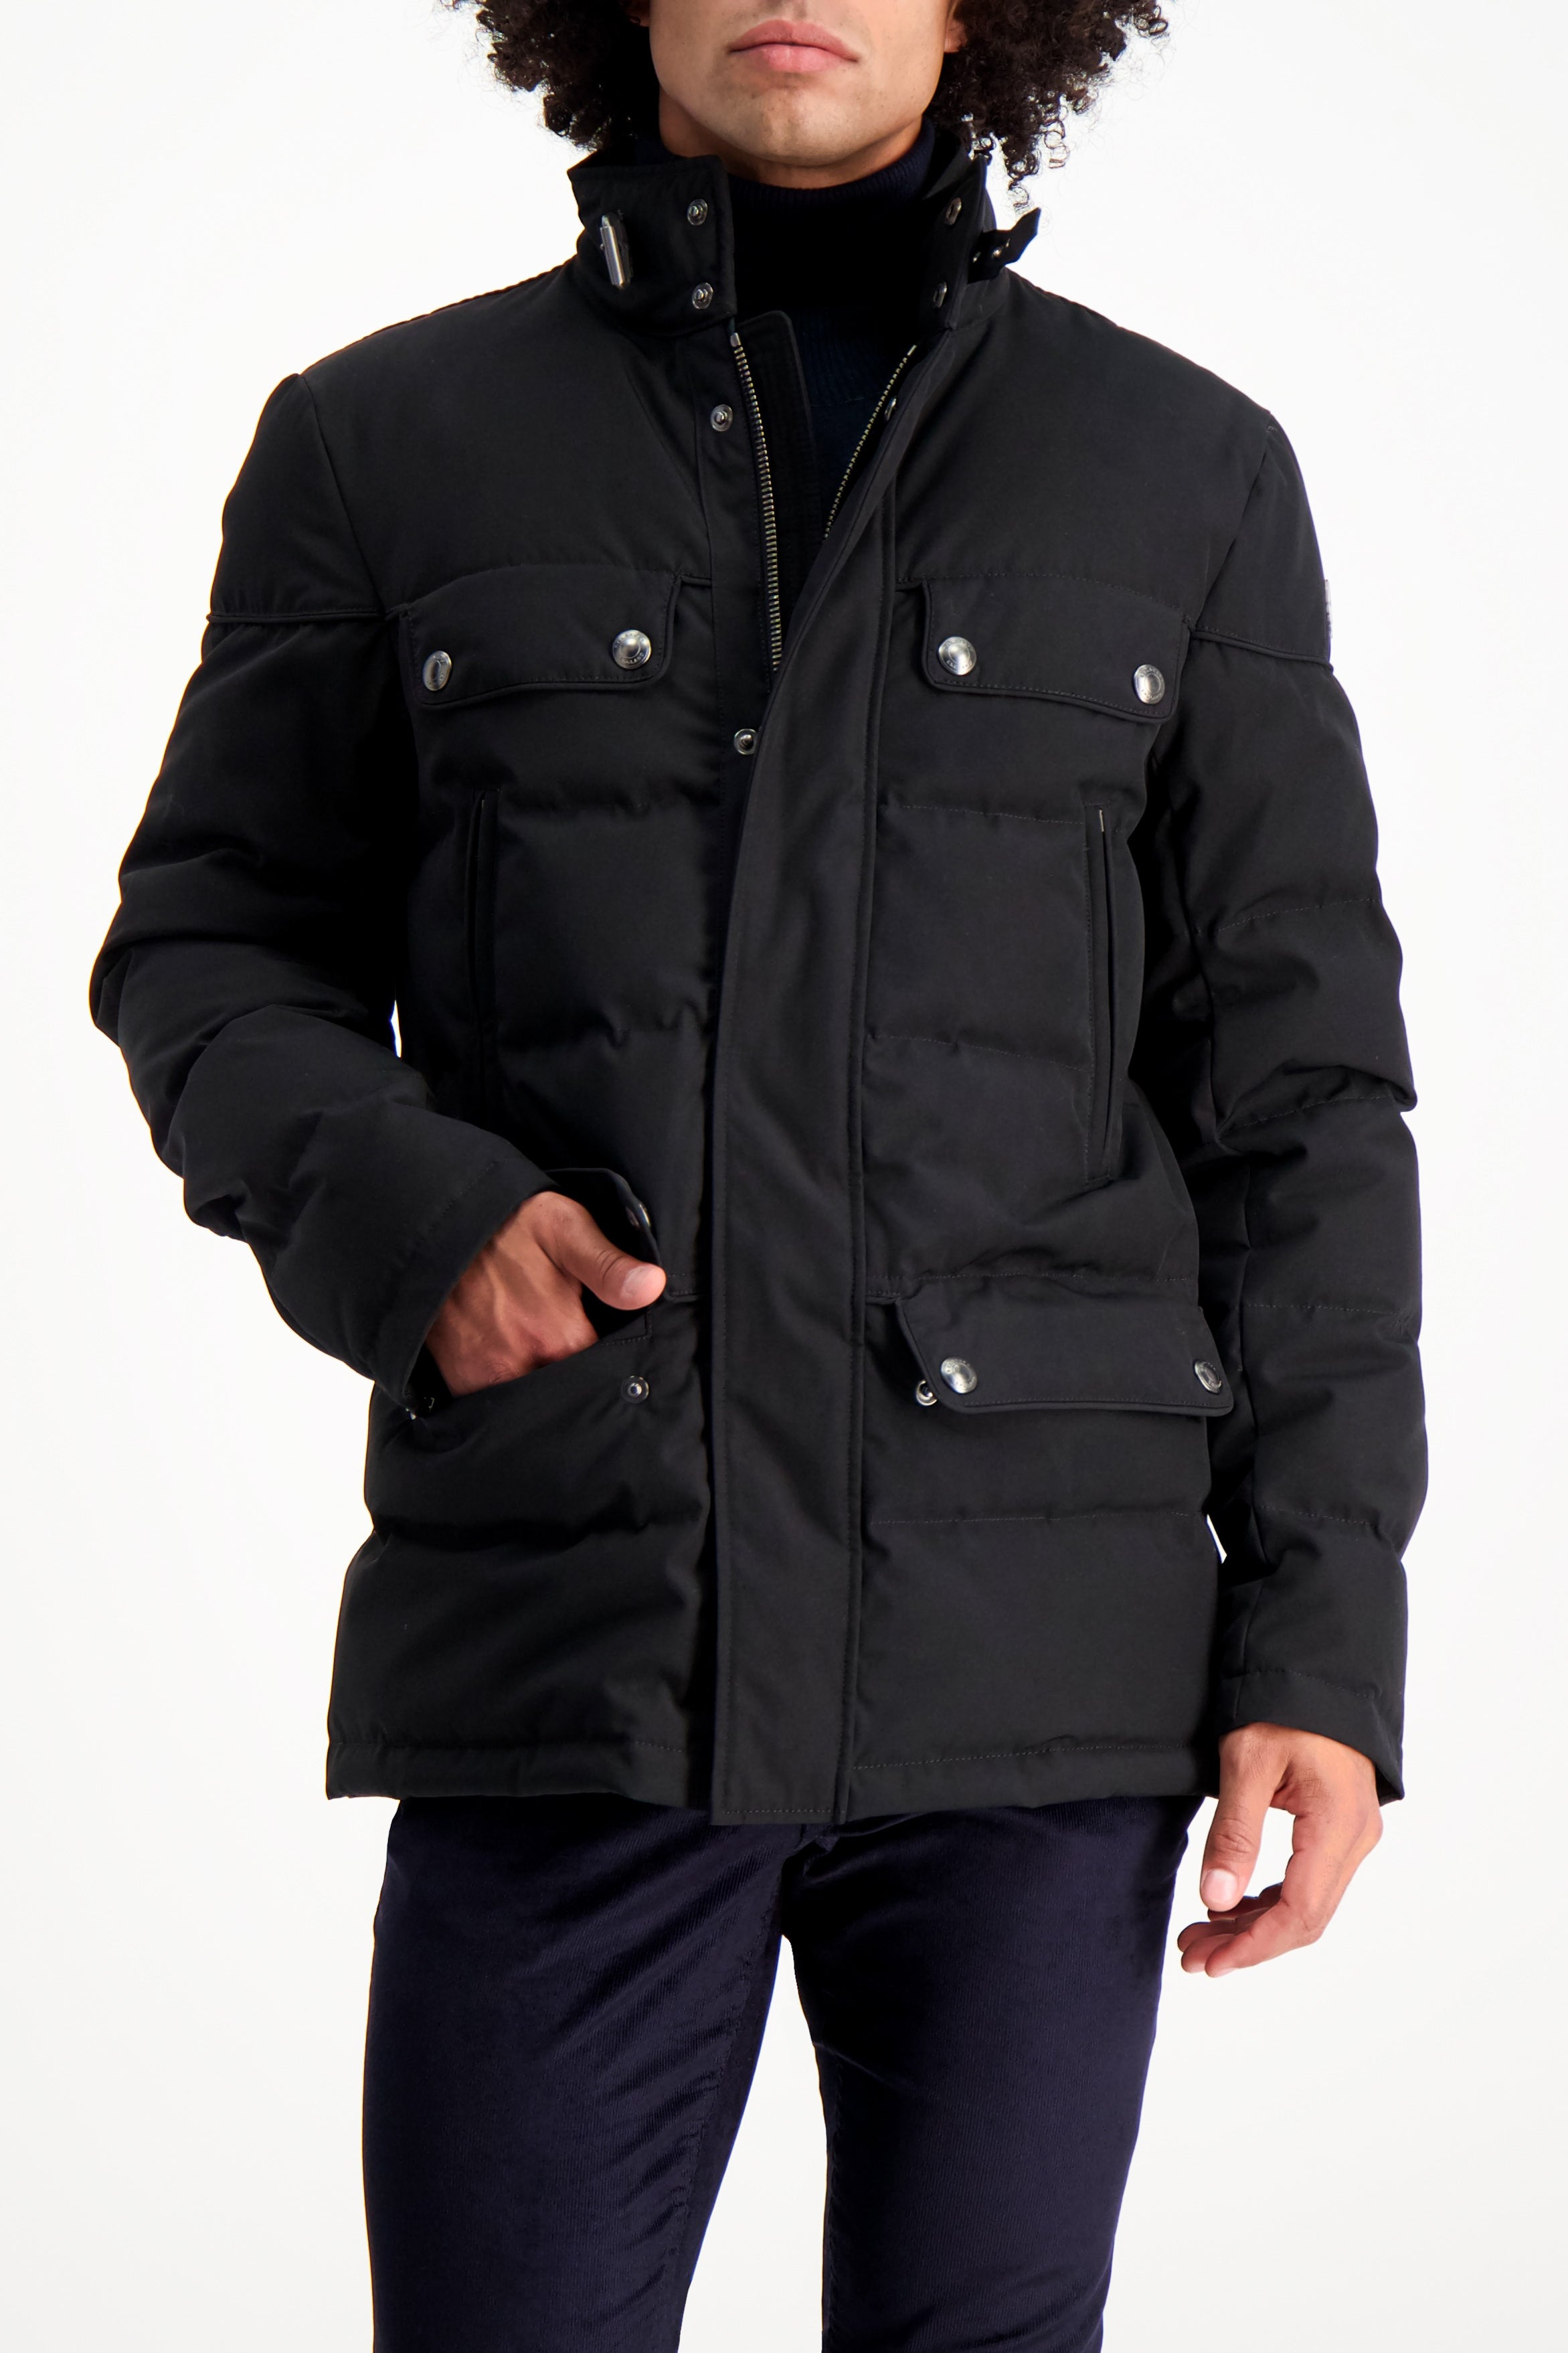 Front Crop Image Of Model Wearing Belstaff Men's Cotton Twill Mountain Jacket